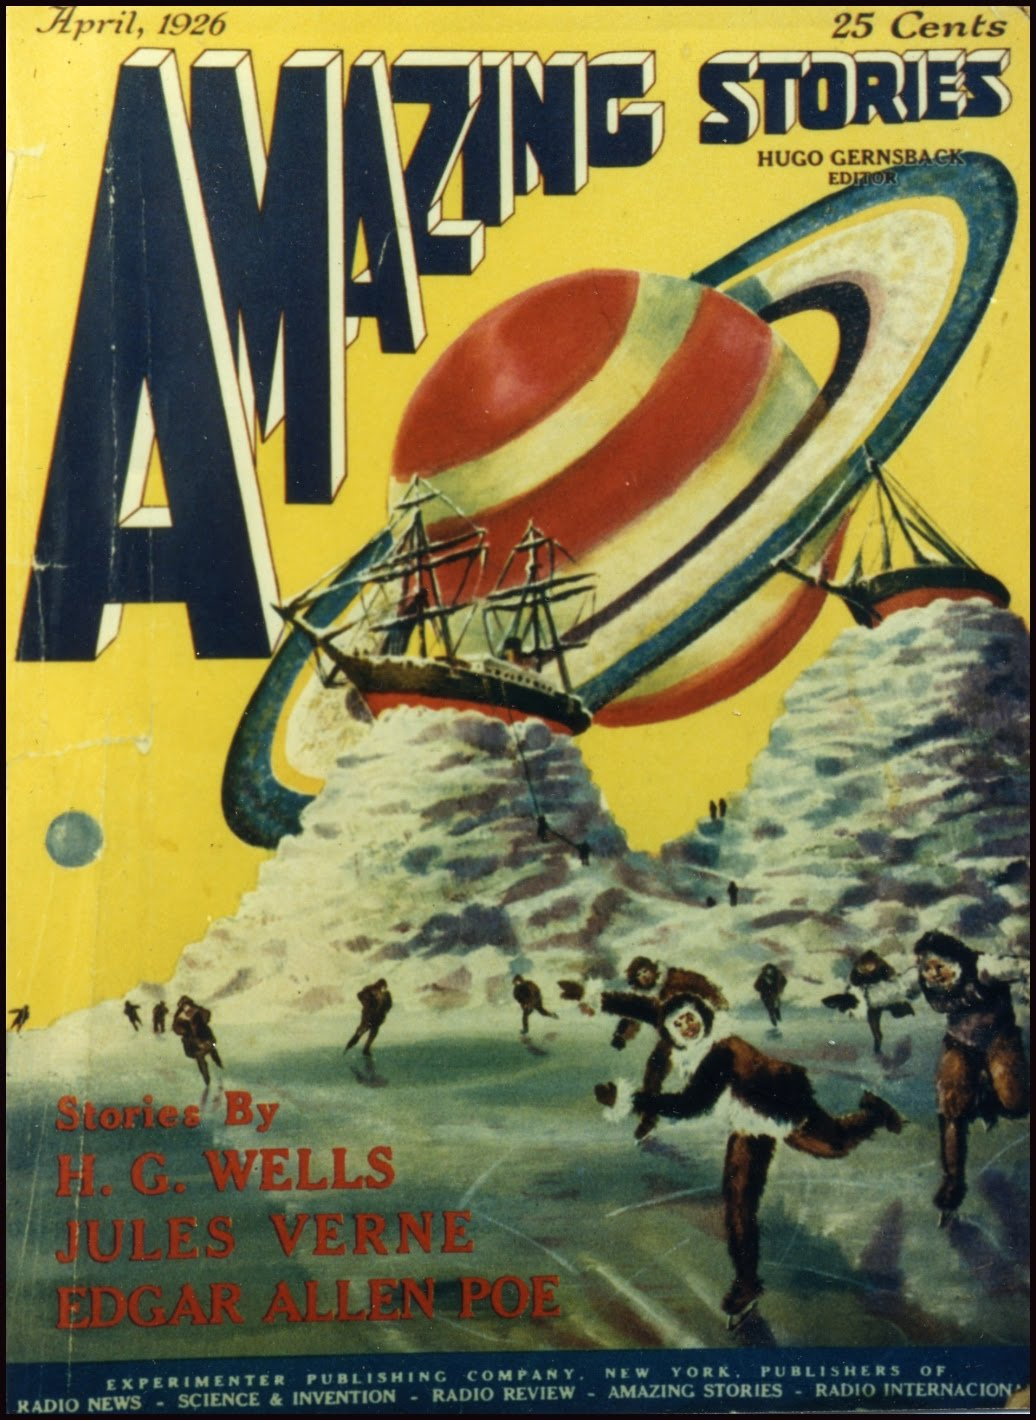 Amazing Stories Volume 21 Number 06: Science Fiction & Fantasy: A Research